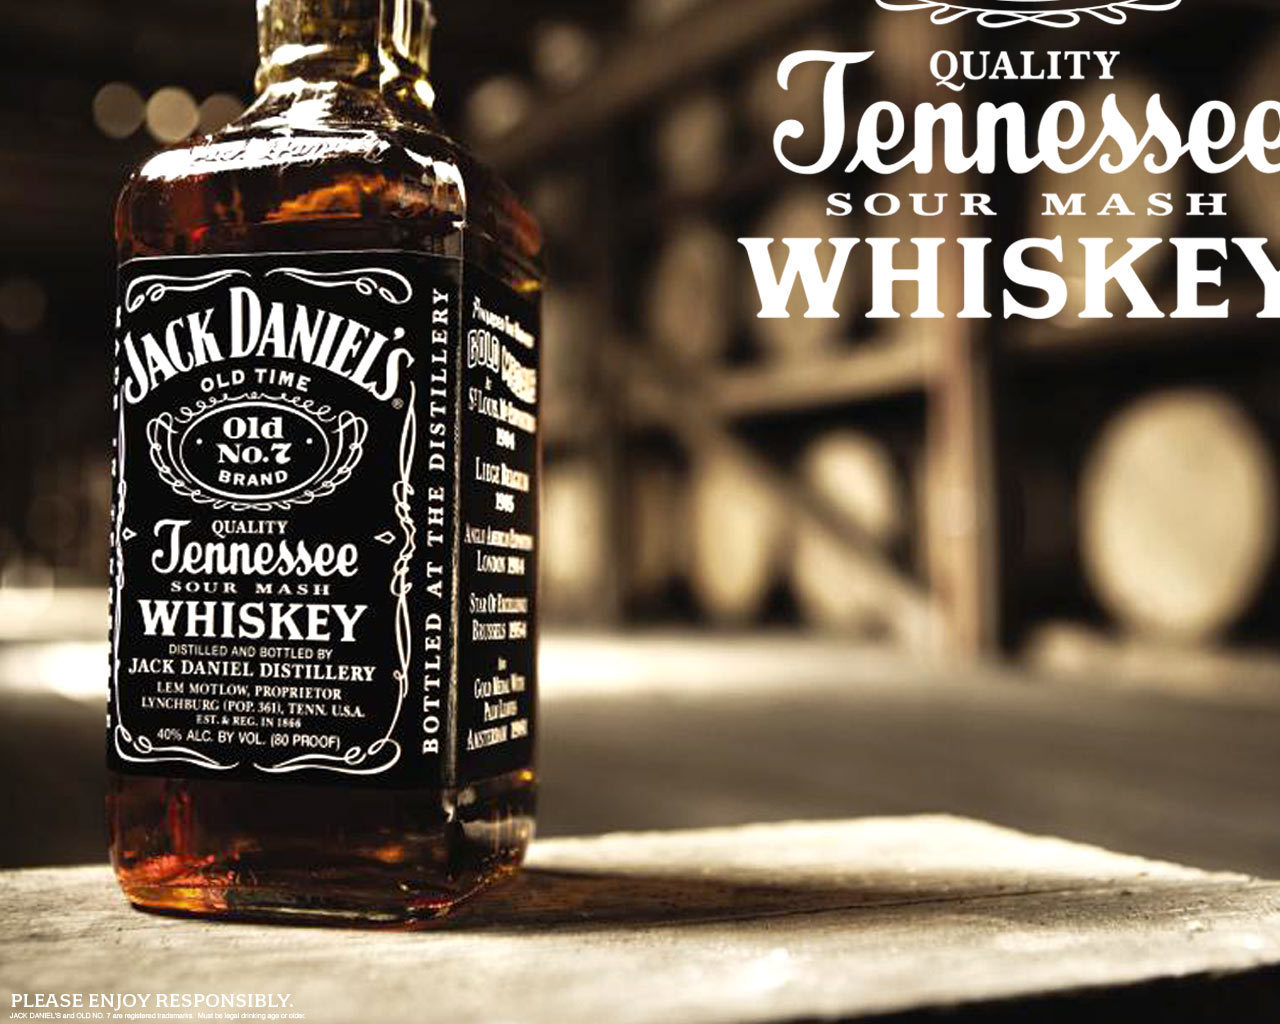 Jack daniels jack daniels hd and background 6763062 jack daniels images jack daniels hd wallpaper and background photos voltagebd Images